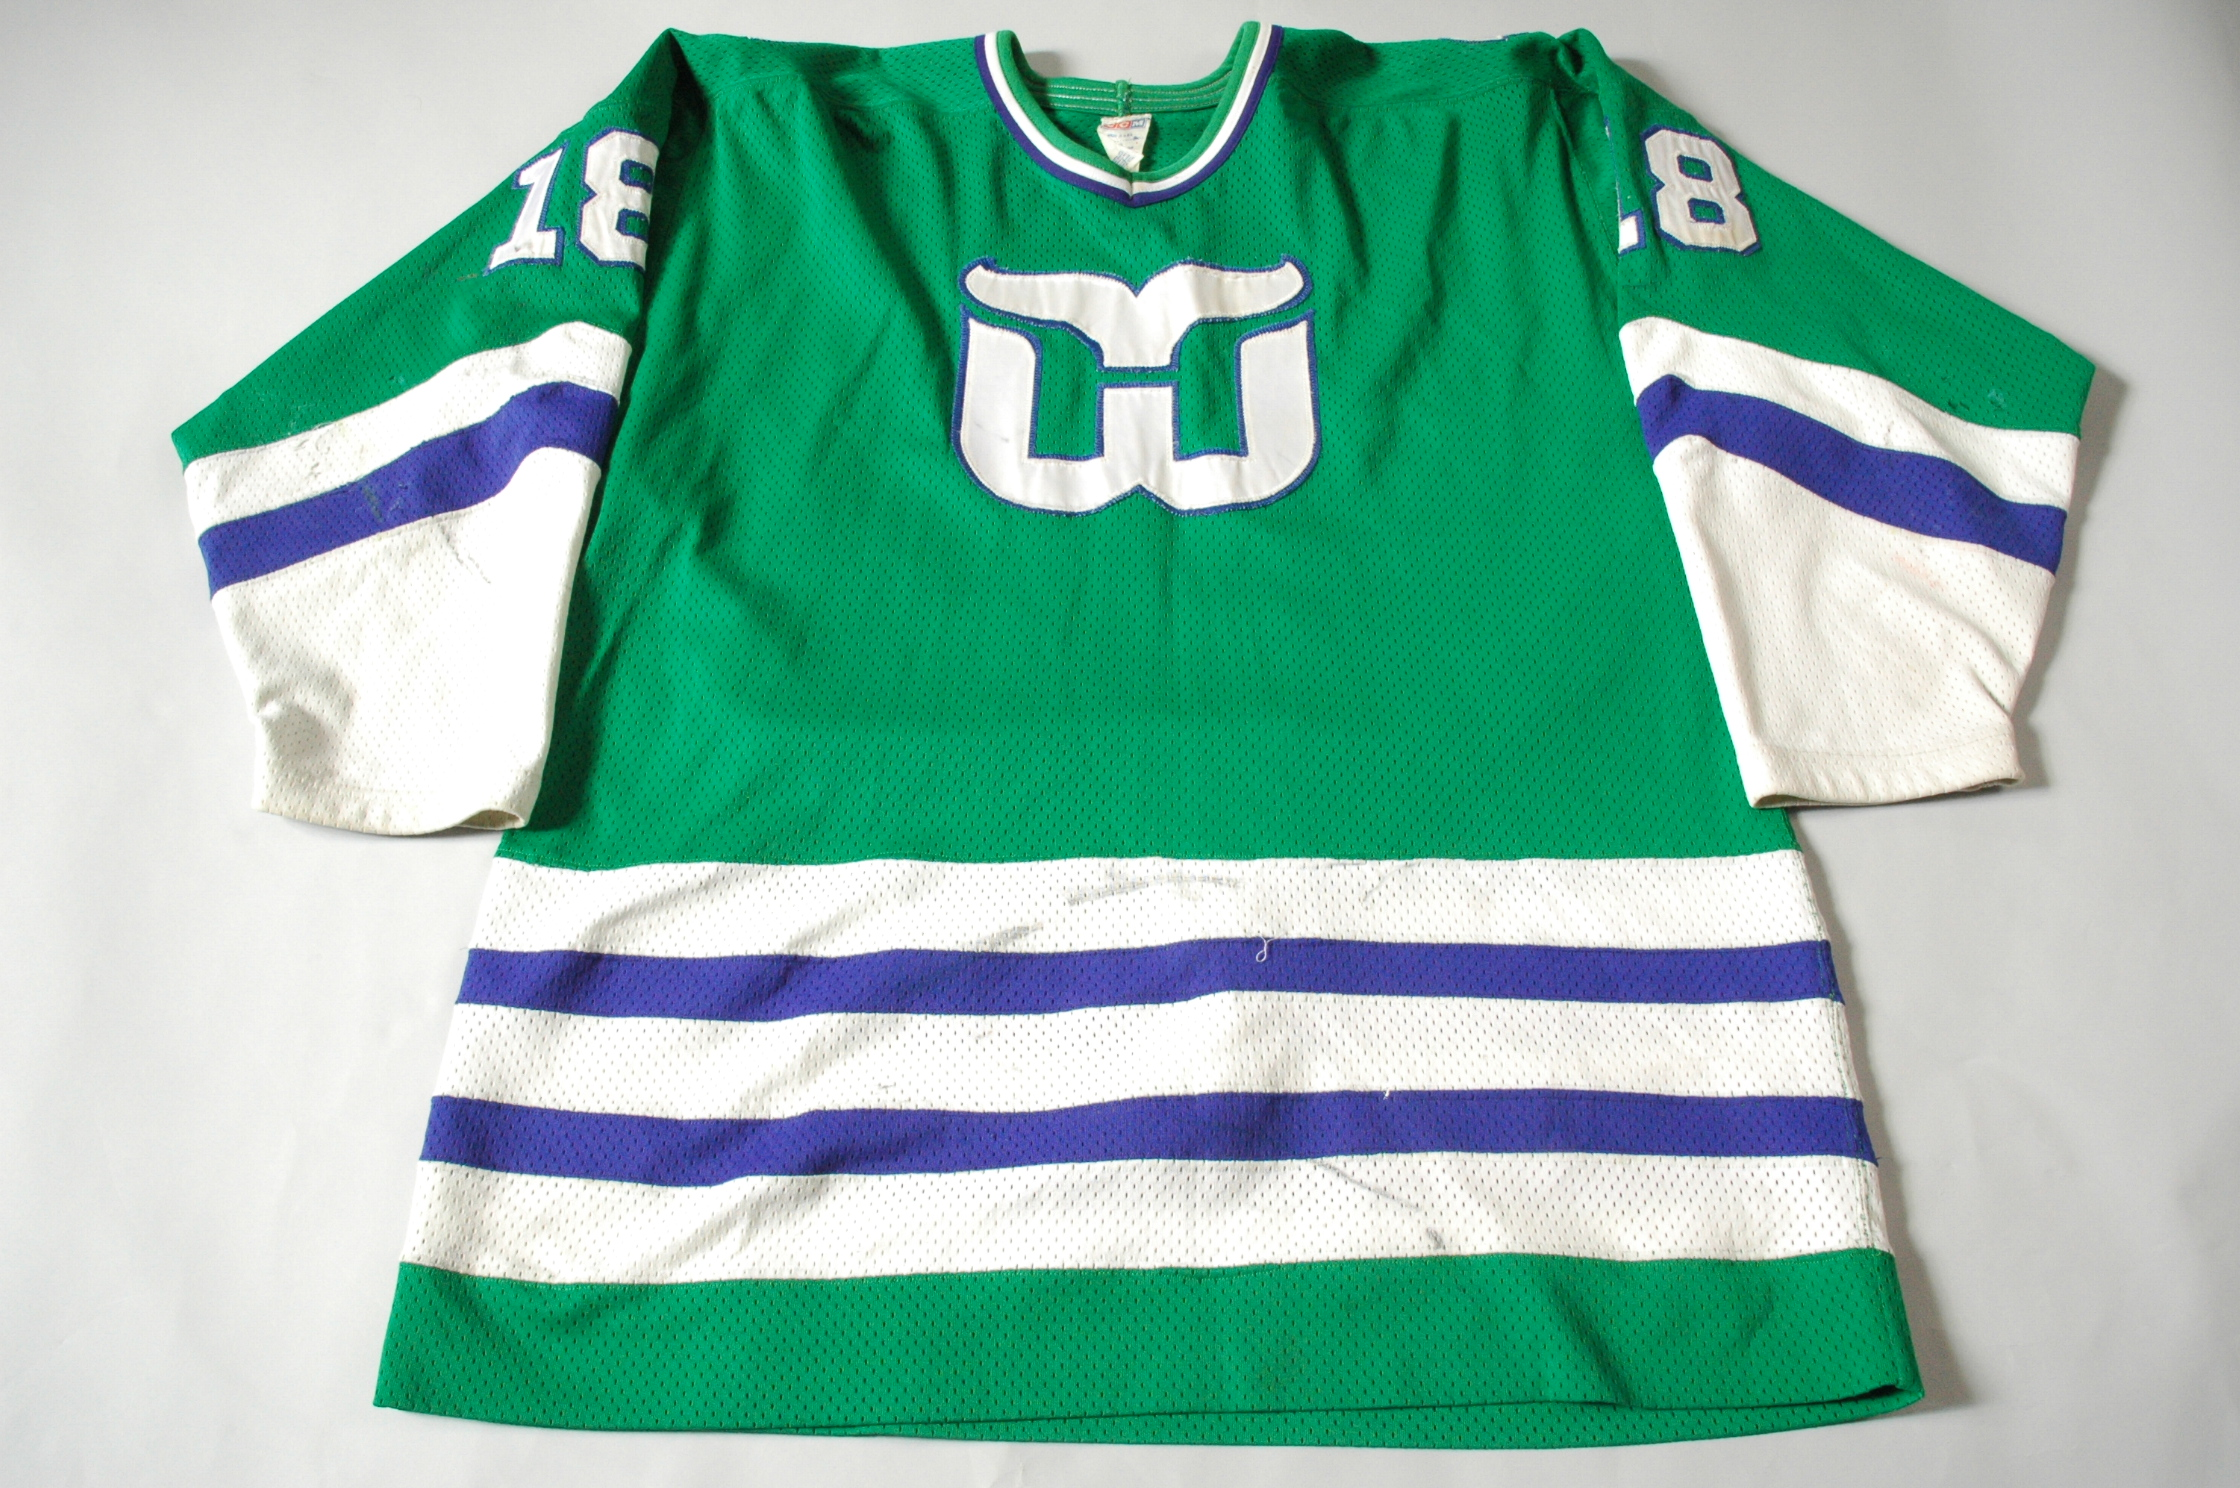 the hartford whalers are going going essay Raleigh, nc (ap) the new owner of the carolina hurricanes has a soft spot for his team's old identity - the hartford whalers.